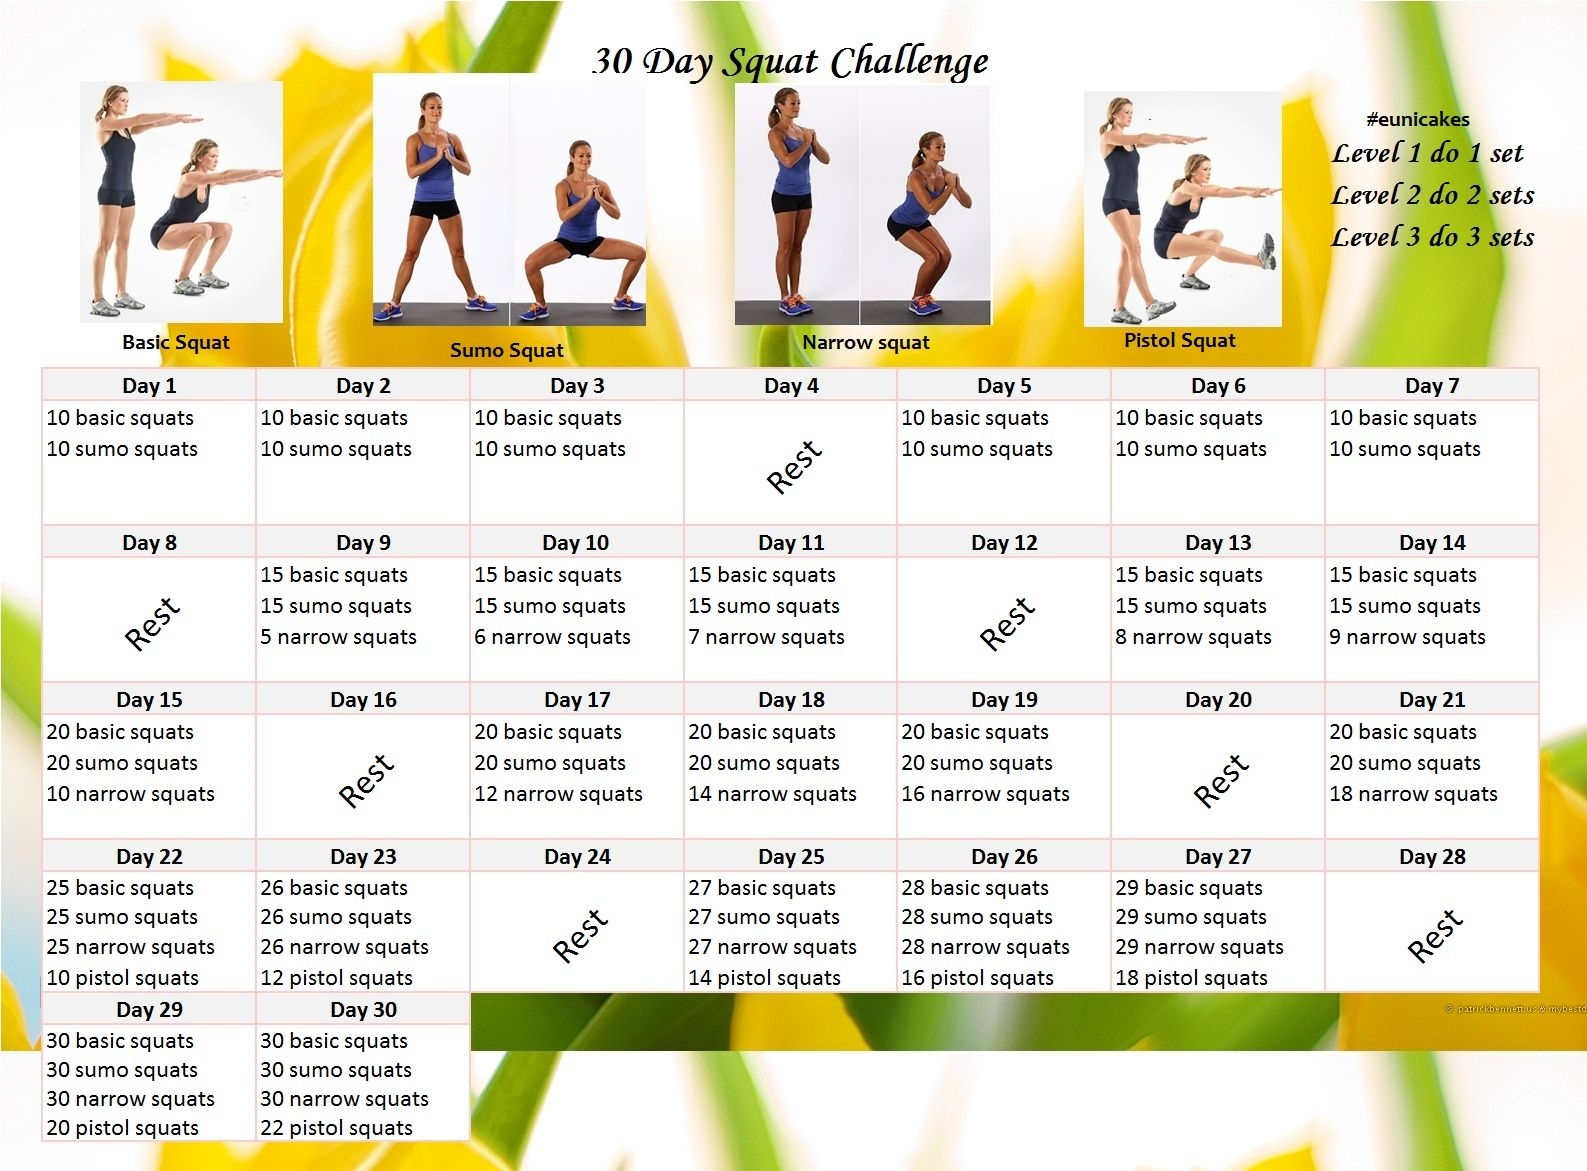 Fitness Challenge: 30 Day Squat Calendar Challenge | Eunicakes